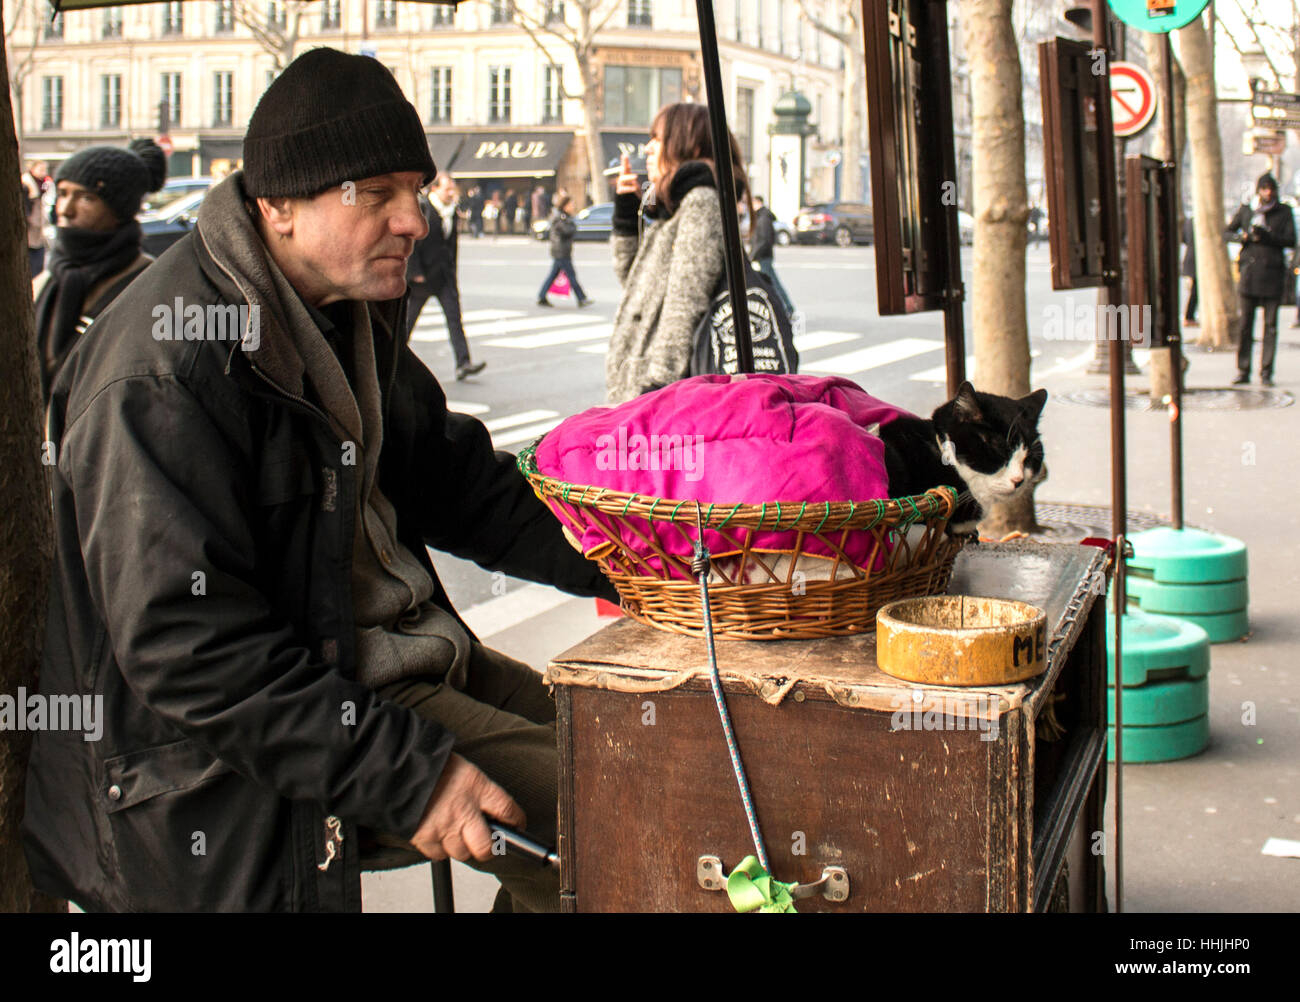 Man with a cat begging for money in Paris - Stock Image